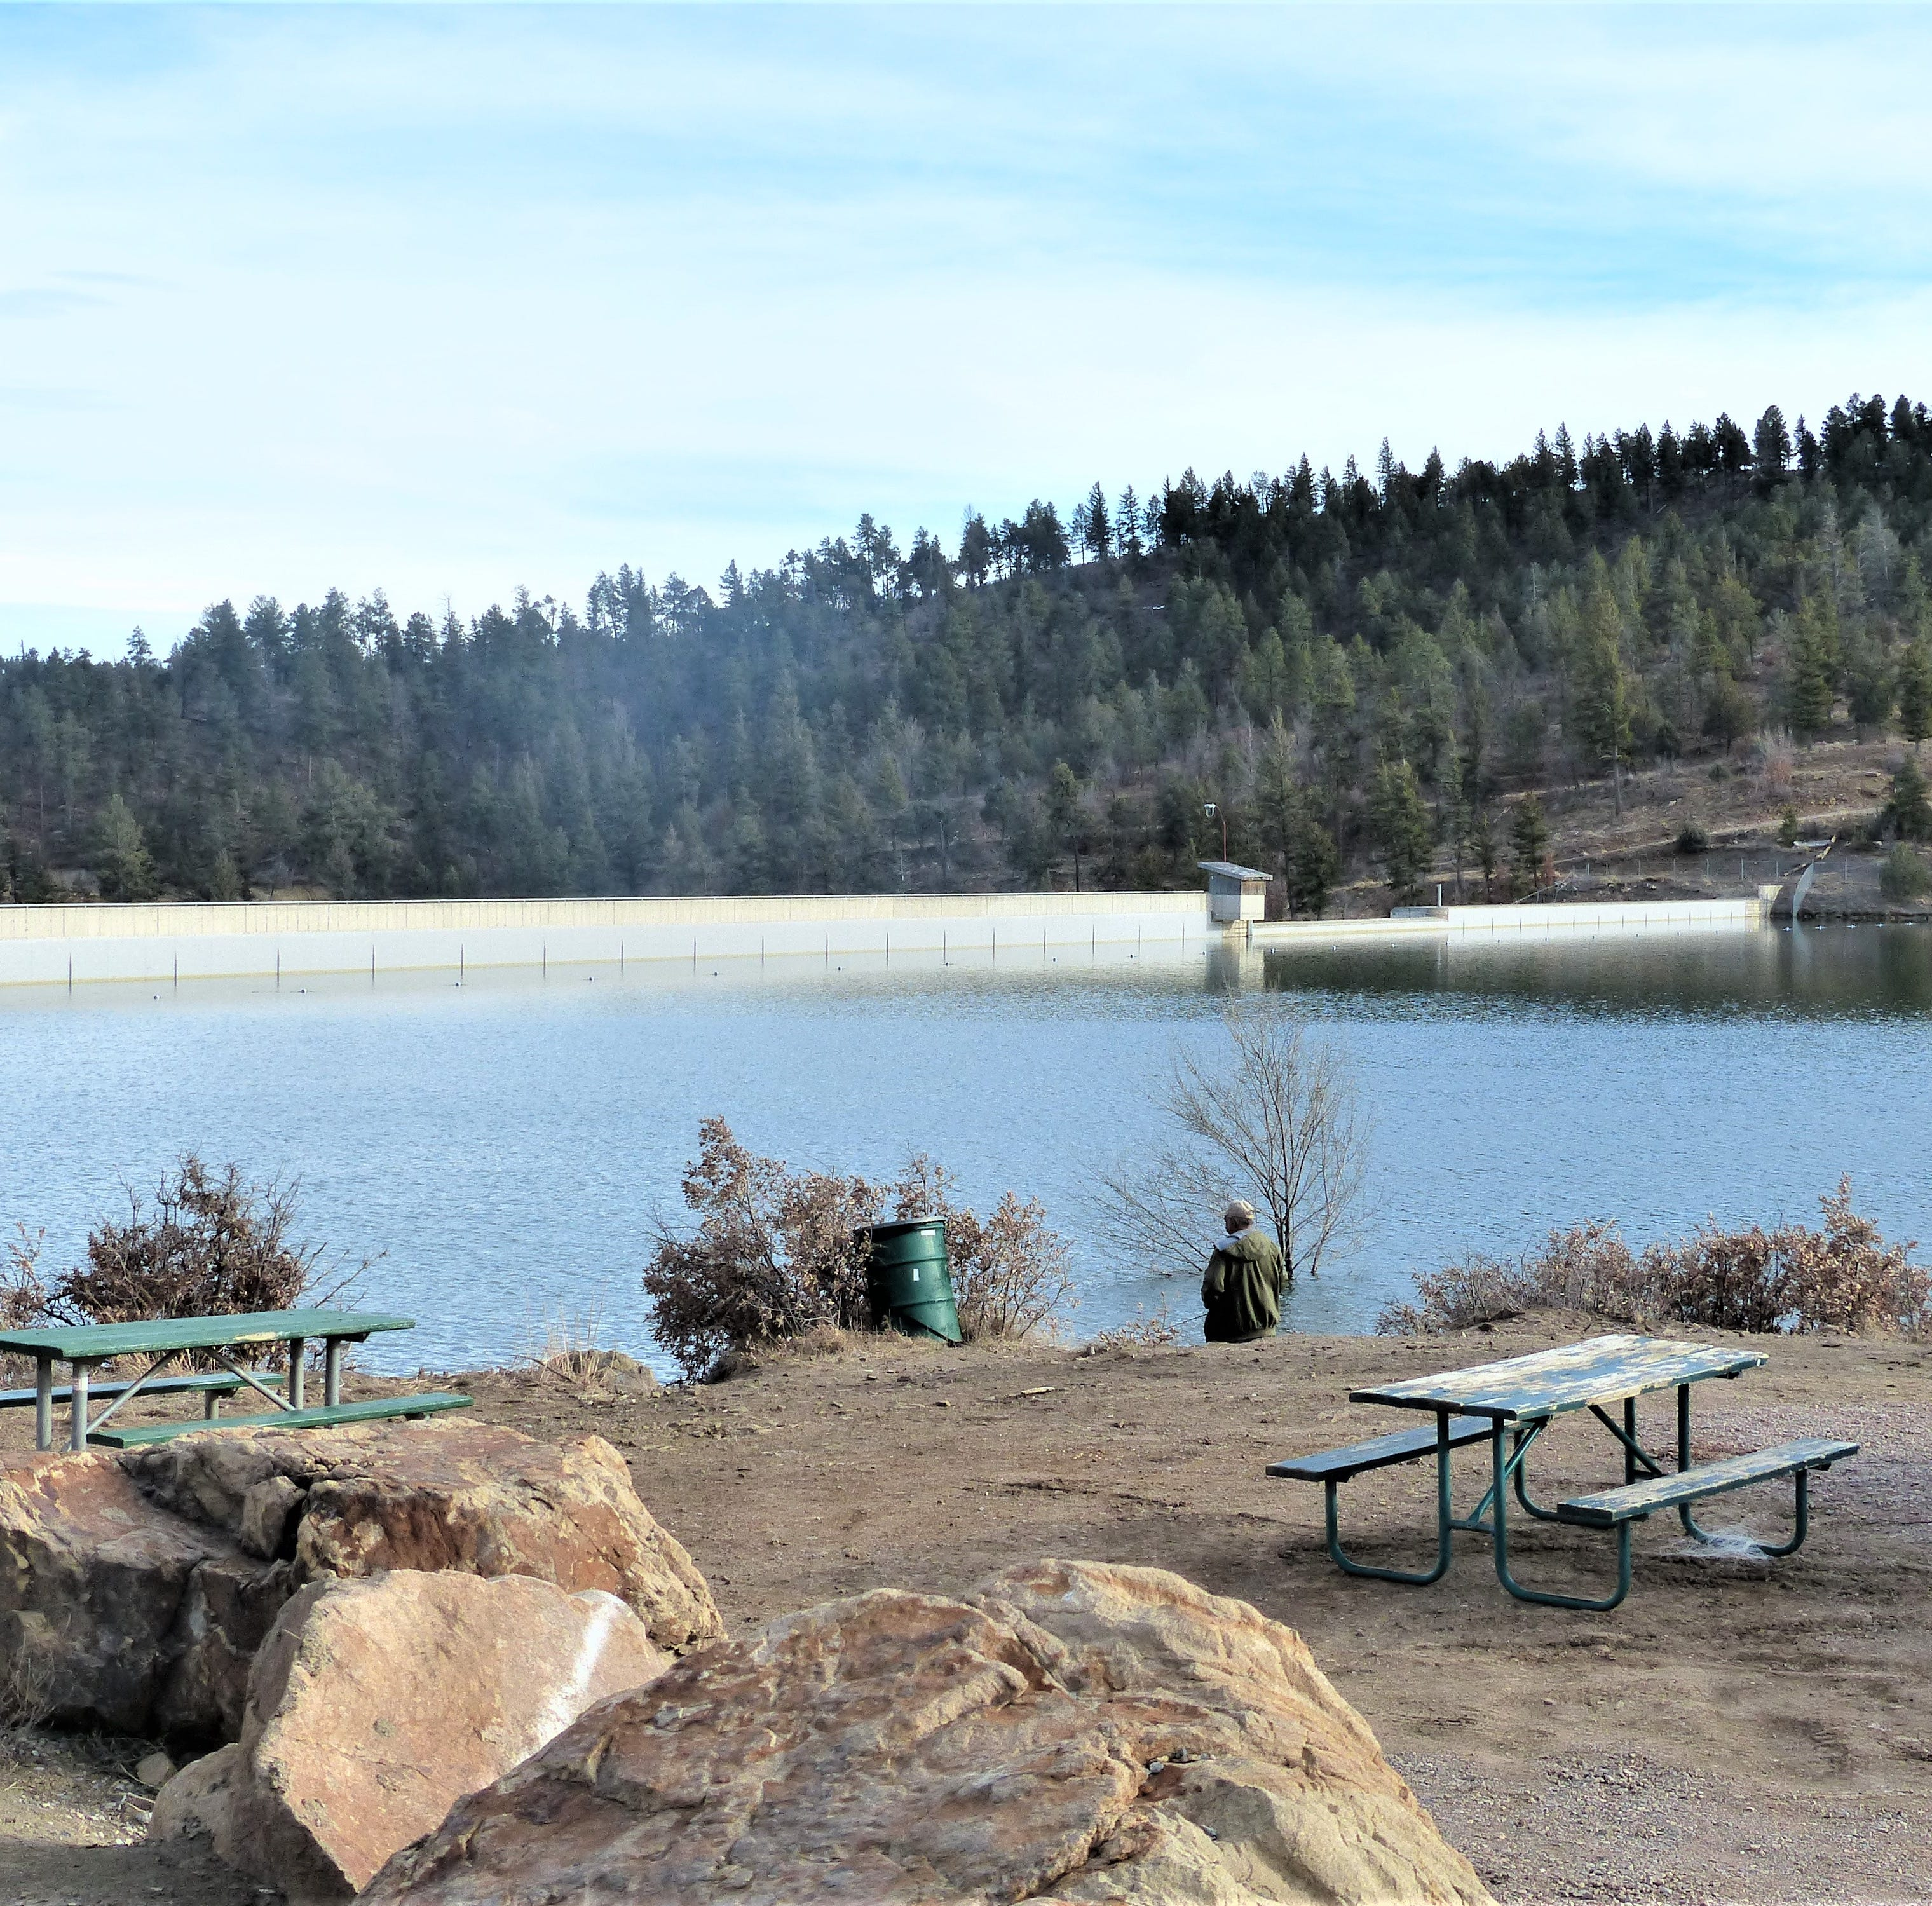 Grindstone Lake seen as major recreational draw to Ruidoso